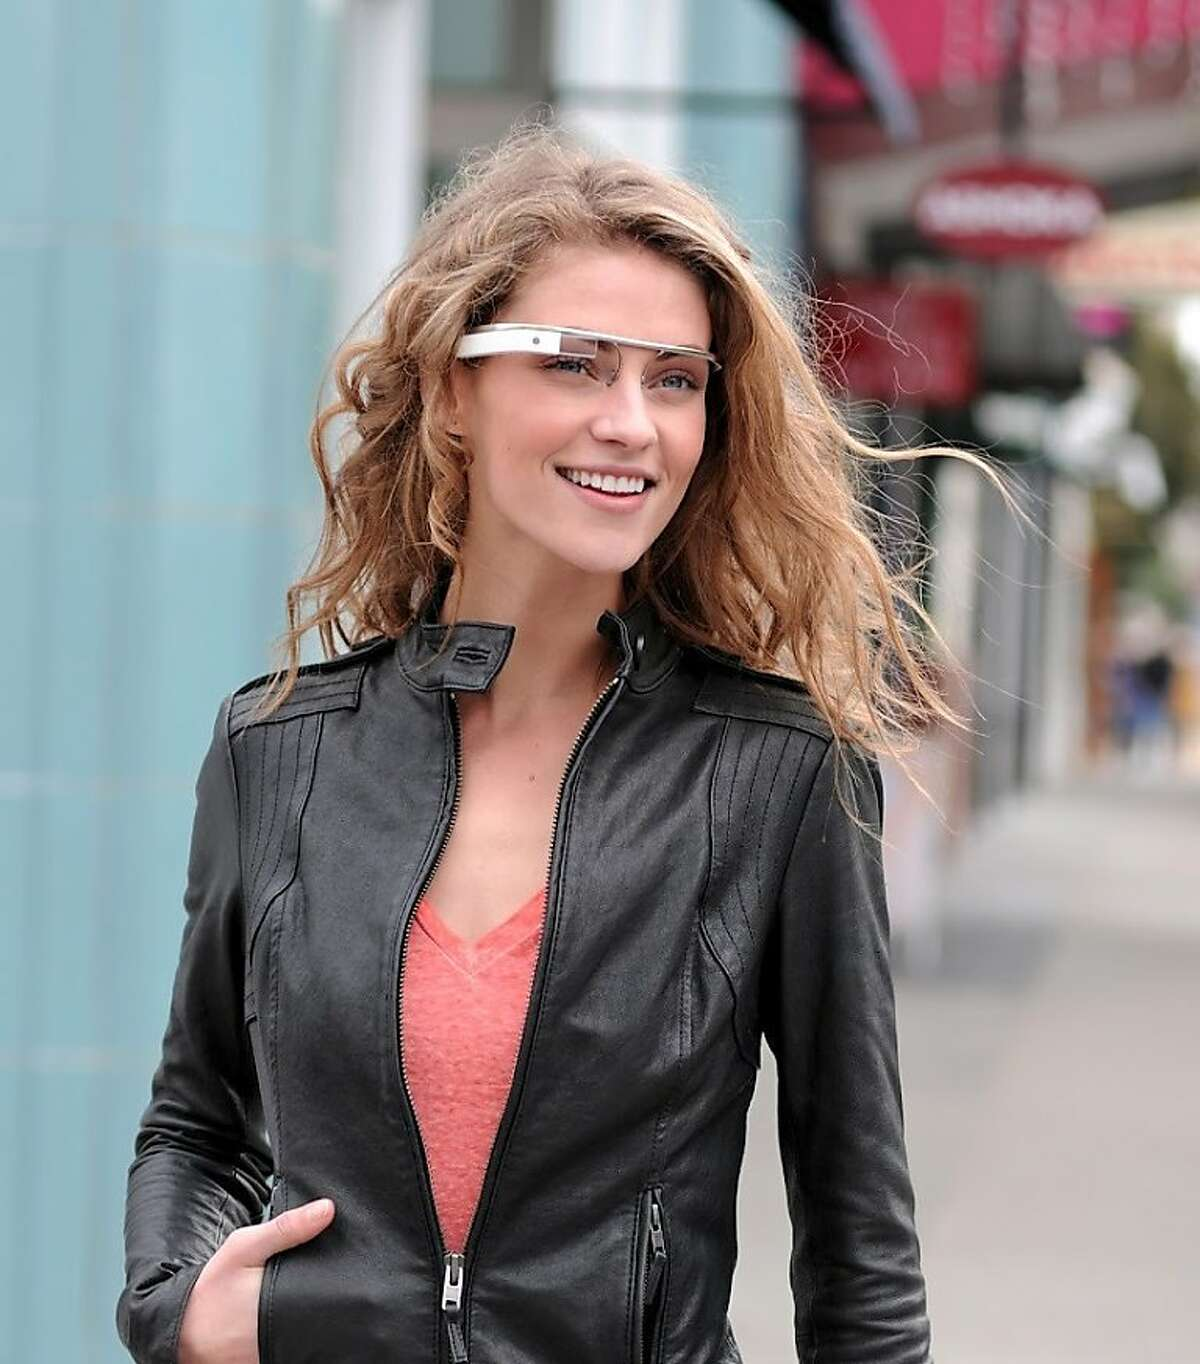 """In this undated handout photo provided by the Google[x] group's """"Project Glass"""", an early prototype of Google's futuristic Internet-connected glasses, are modeled. The specs are said to give you directions, let you video chat, shop and do everything else you now need a handheld gadget to accomplish. Google gave a glimpse of """"Project Glass"""" in a video and blog post this week. (AP Photo/Google)"""